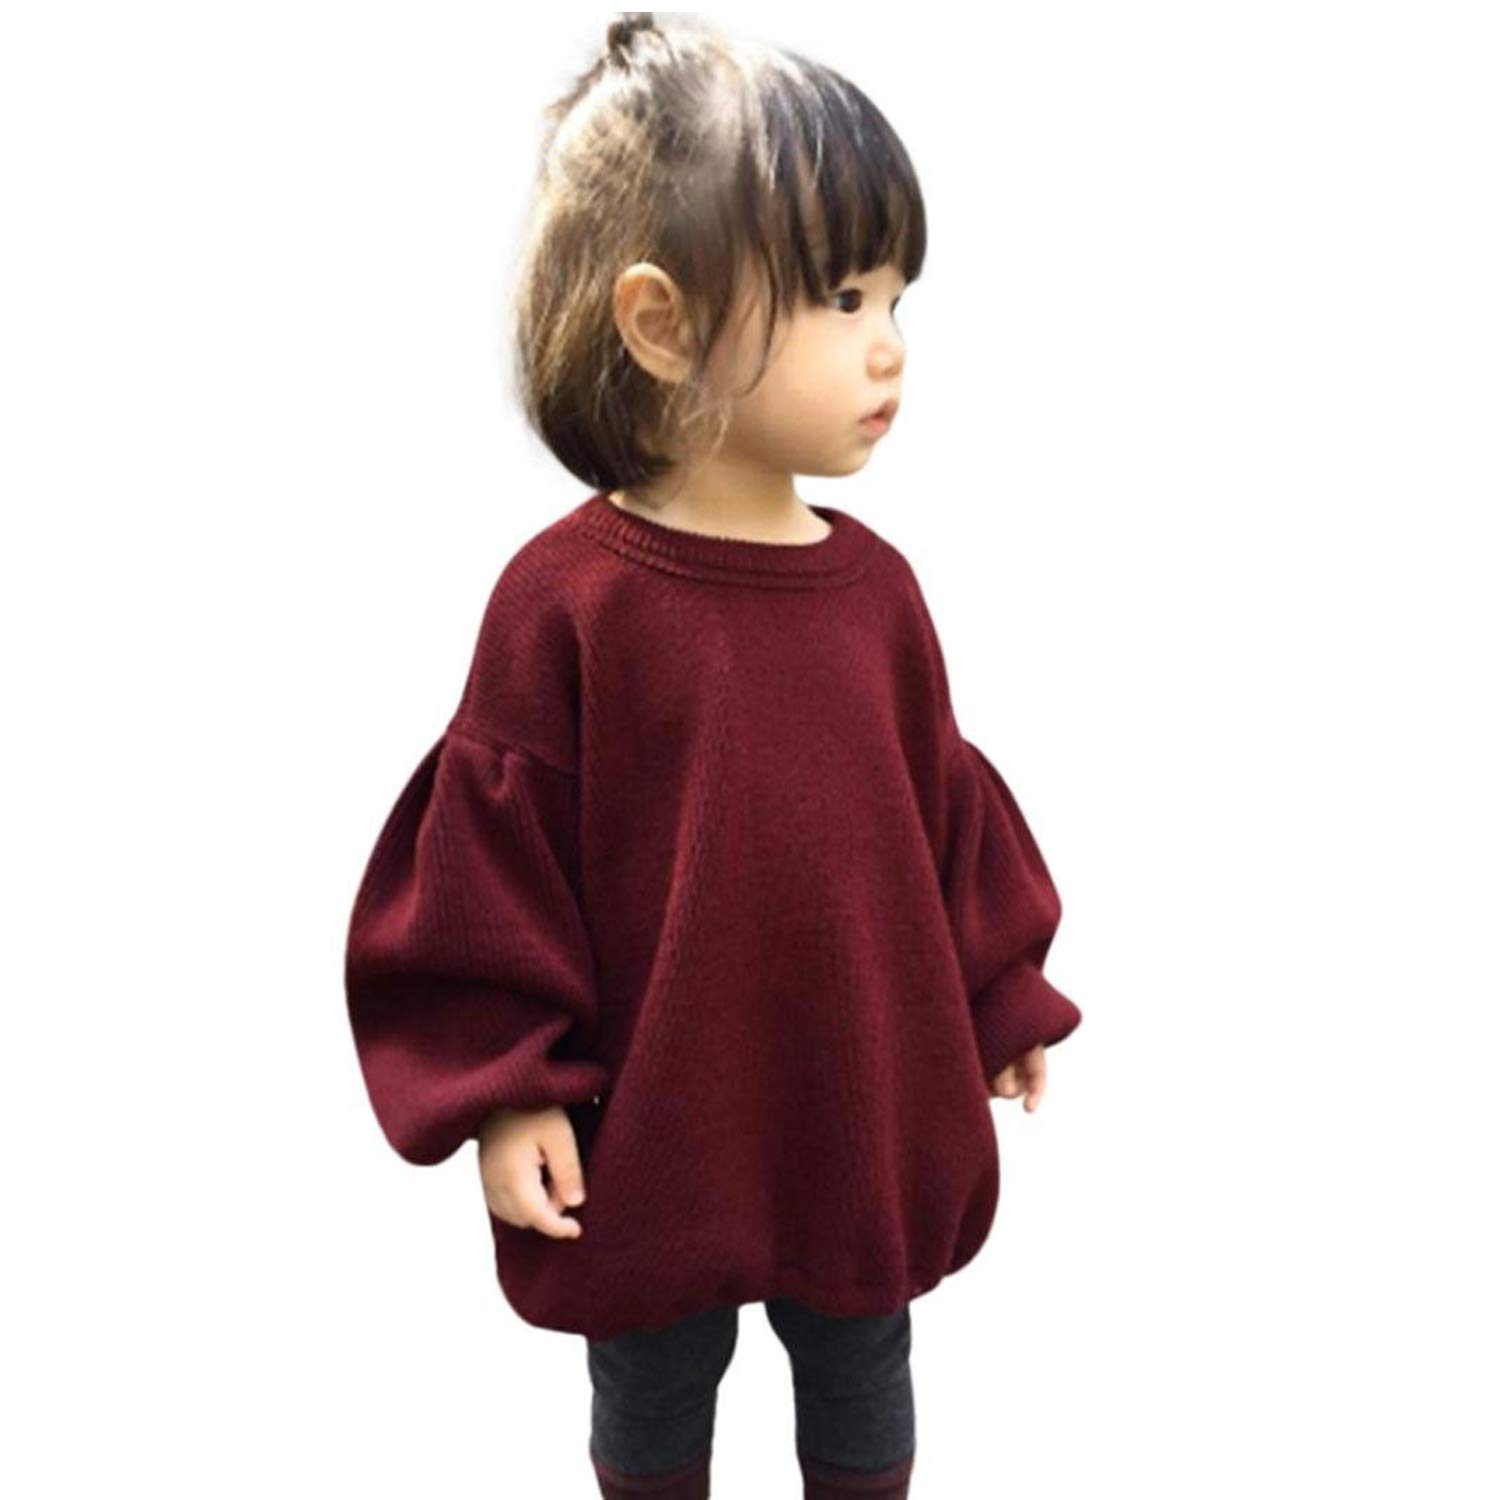 992f84d07bf6 Amazon.com  GRNSHTS Baby Girls Loose Long Sleeve Knit Sweater  Clothing